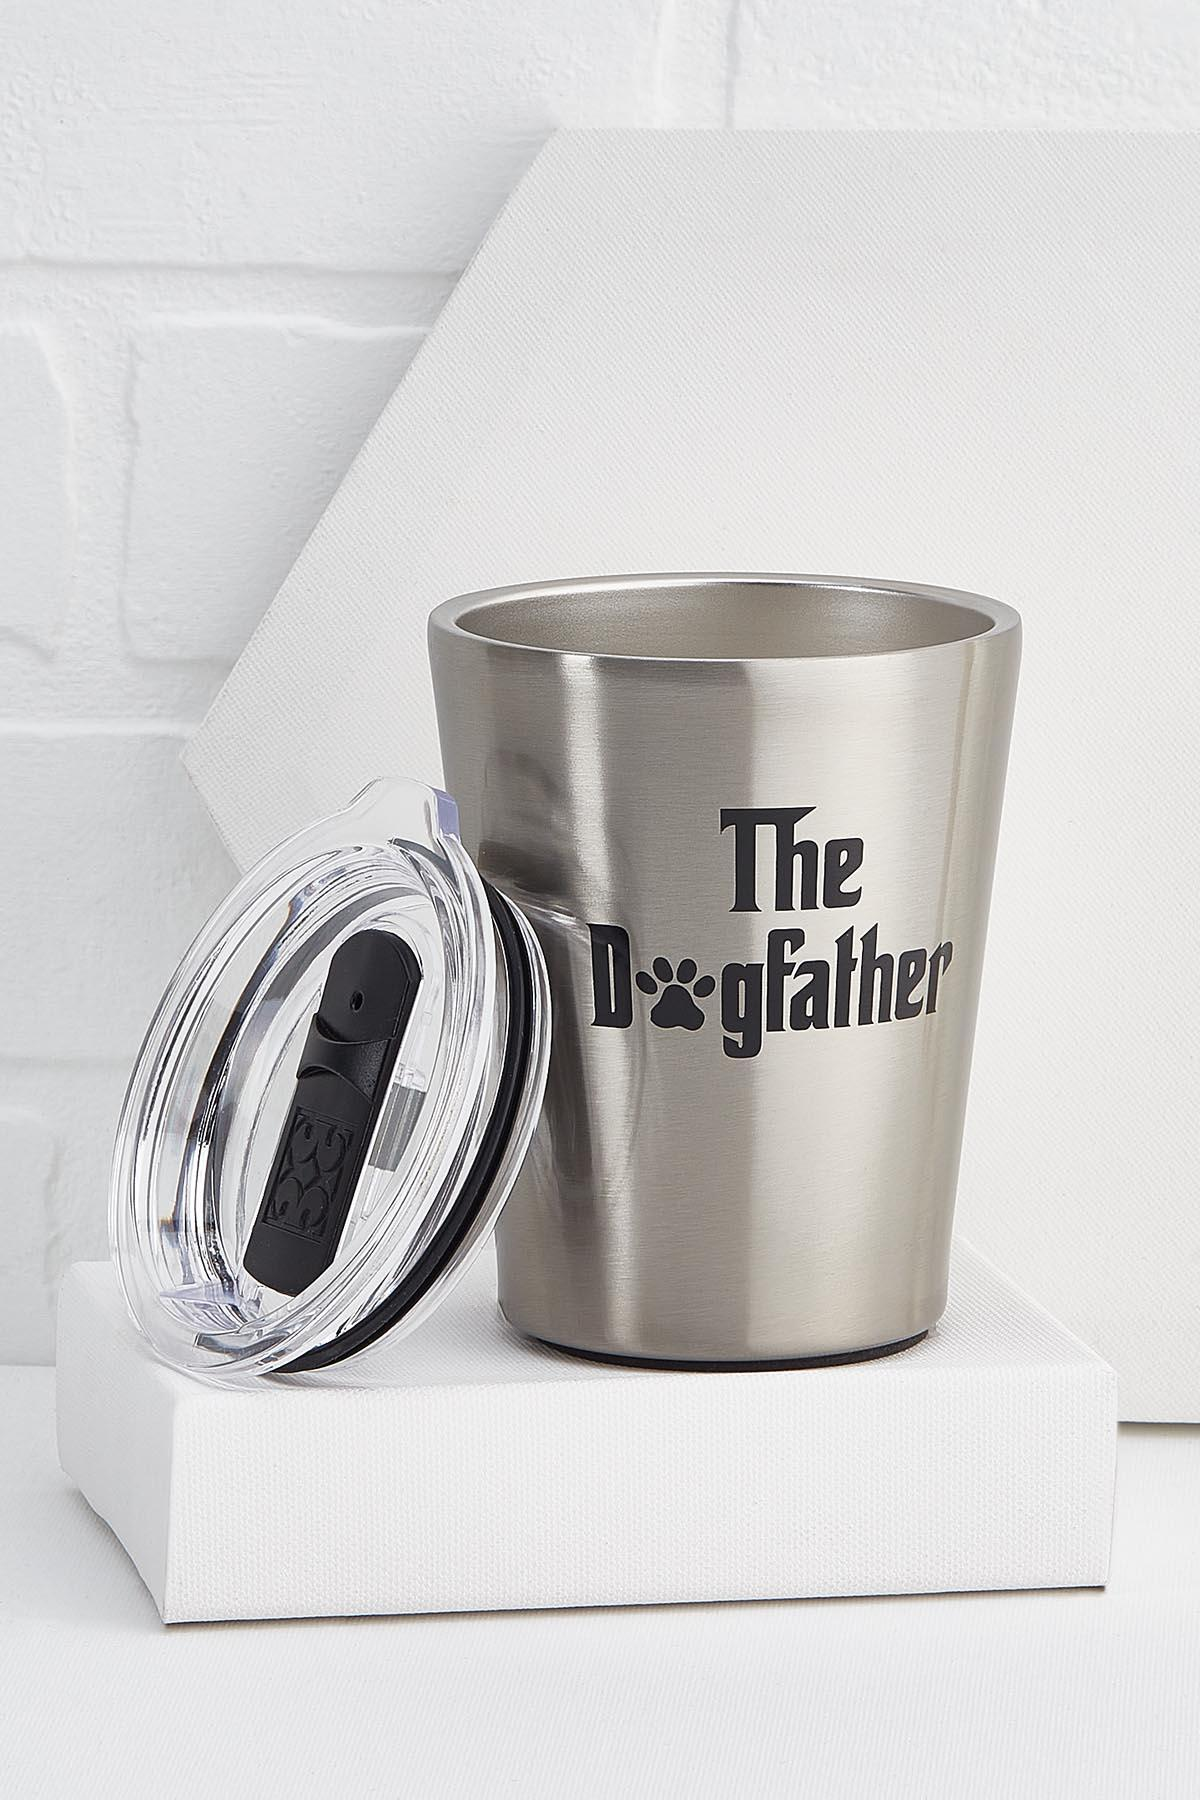 The Dogfather Small Tumbler